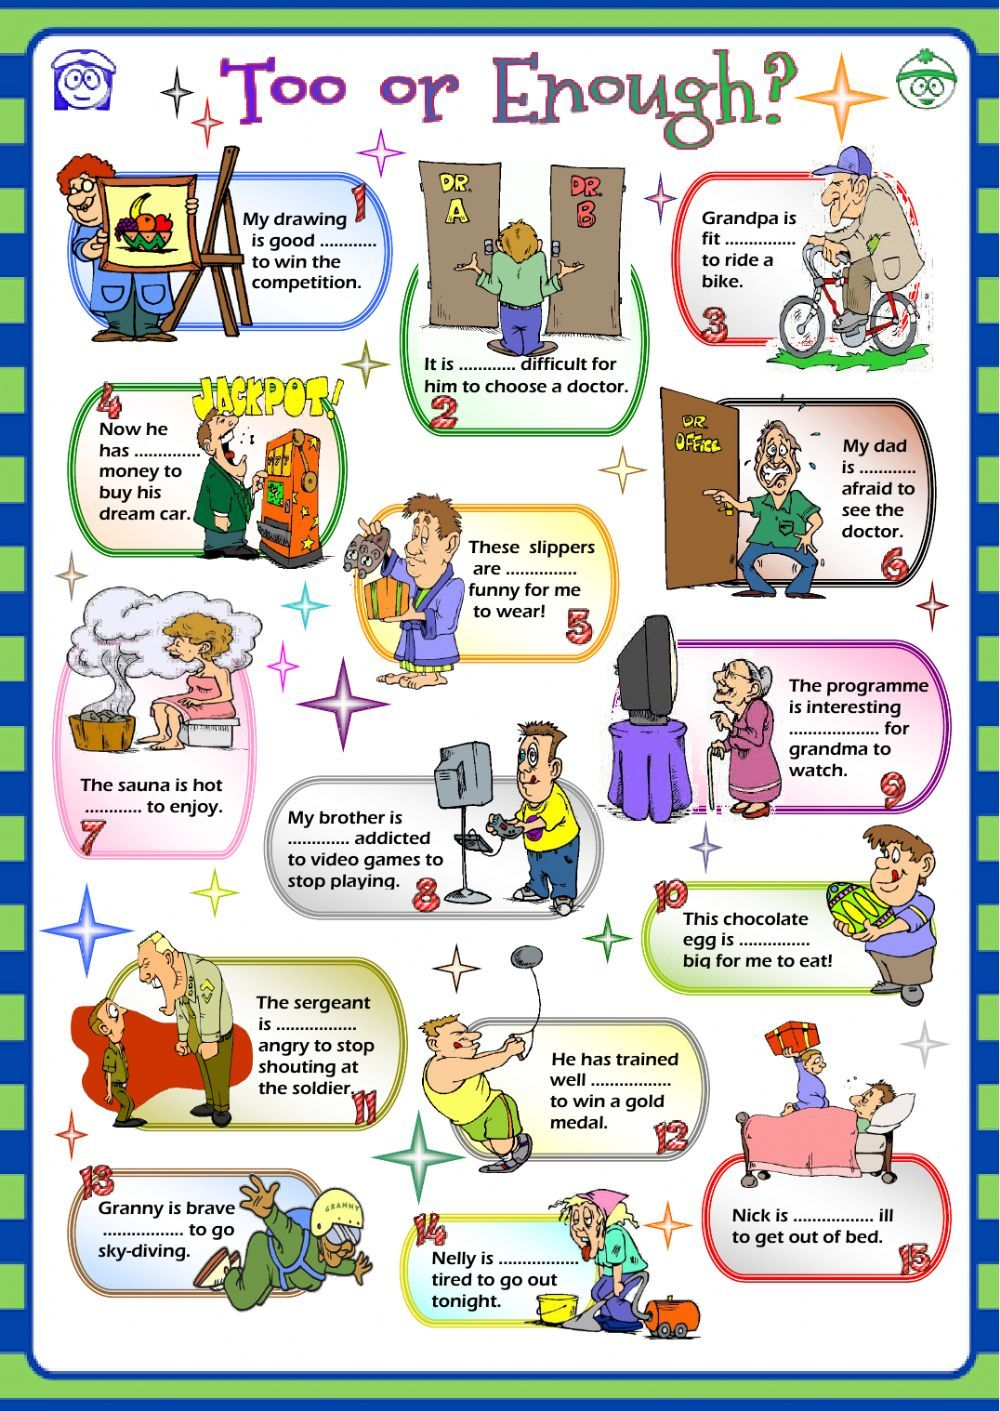 Too Or Enough Interactive And Downloadable Worksheet You Can Do The Exercises Online Teaching English Grammar English Language Teaching Fun Grammar Activities [ 1411 x 1000 Pixel ]